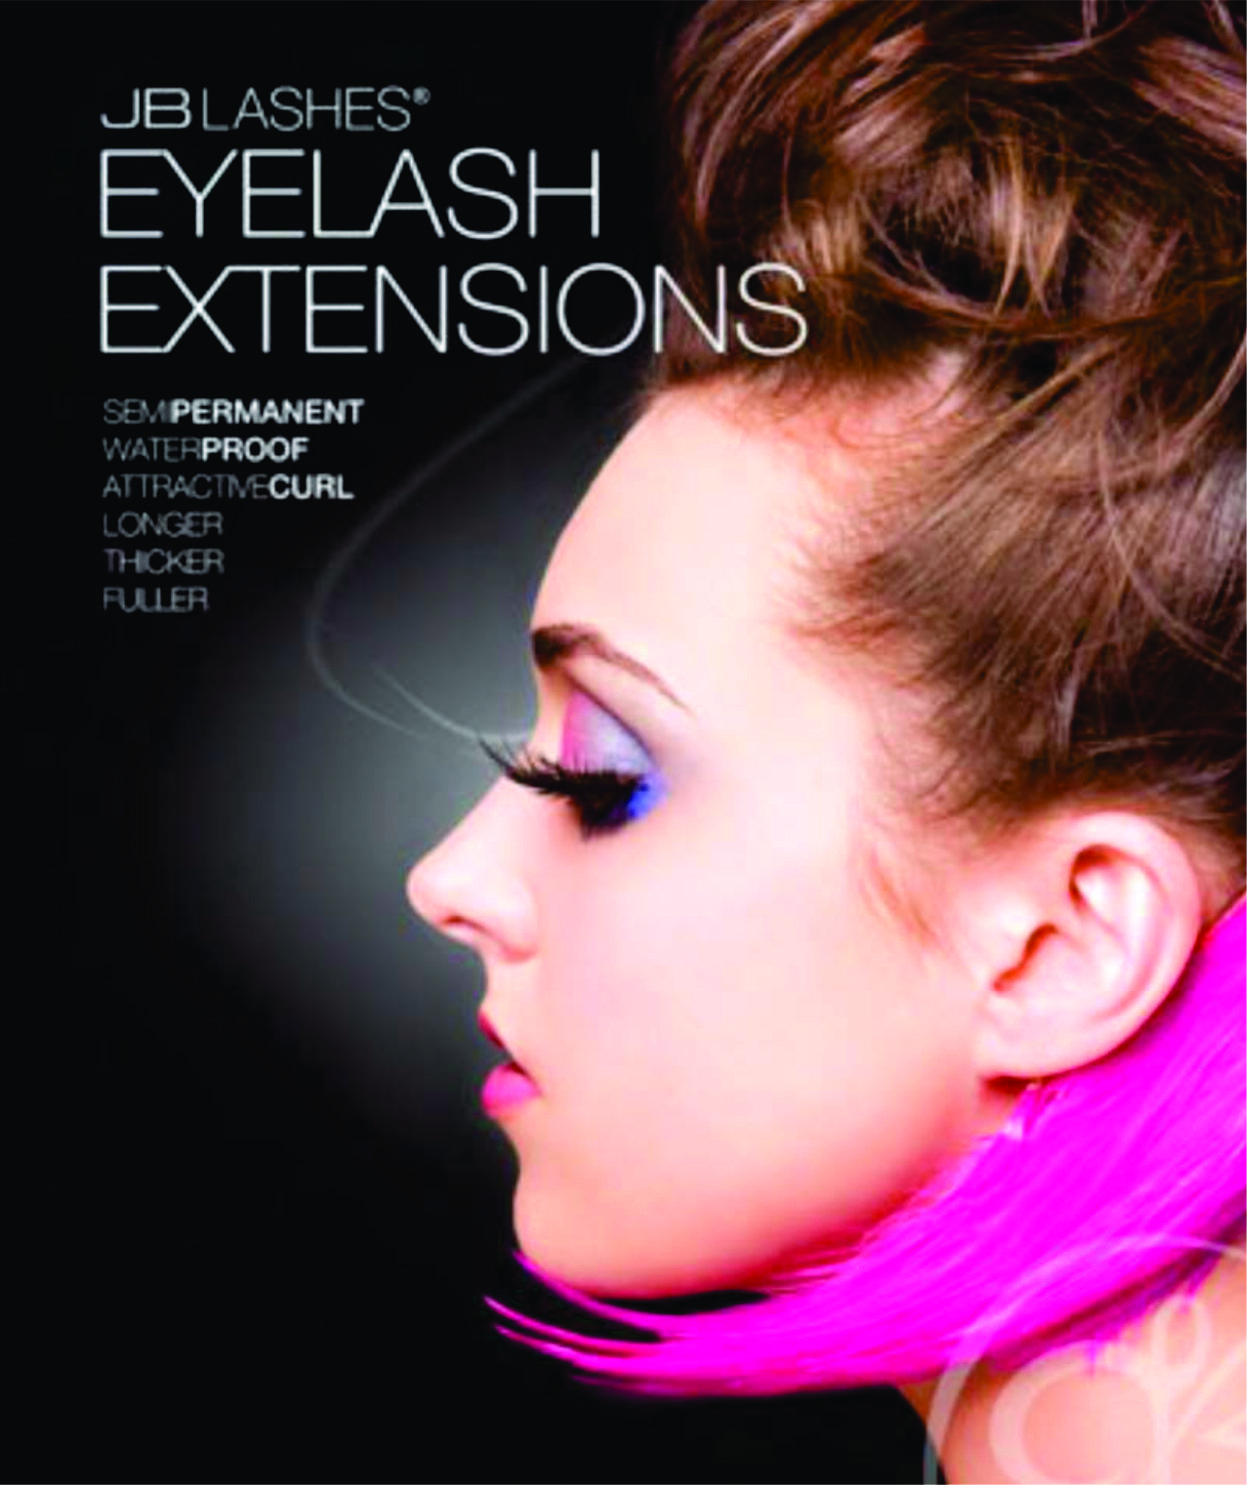 Eyelash Extensions by Jennie Betlach